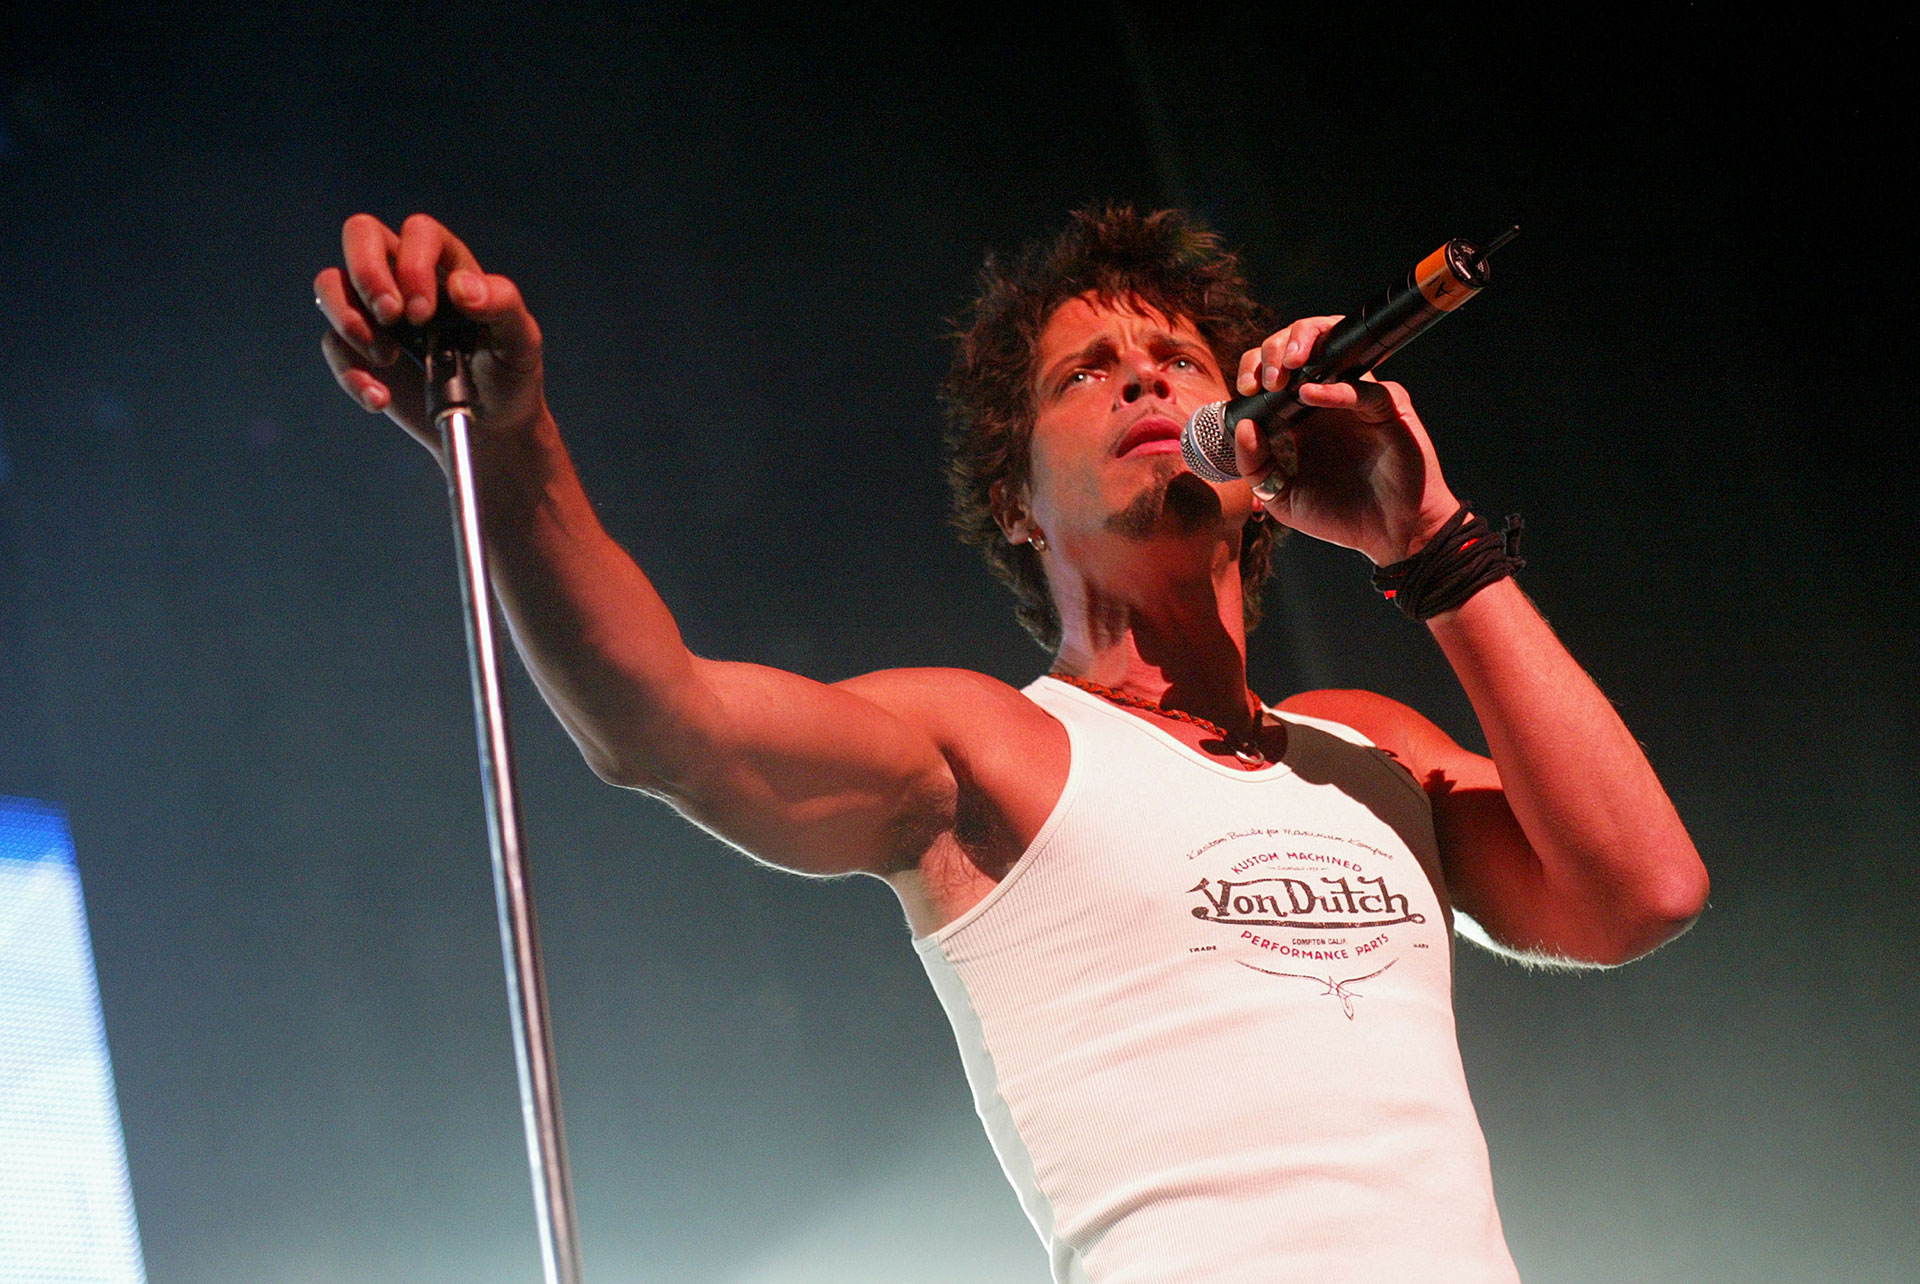 Con Audioslave en 2002, en Los Ángeles (Kevin Winter/Getty Images)